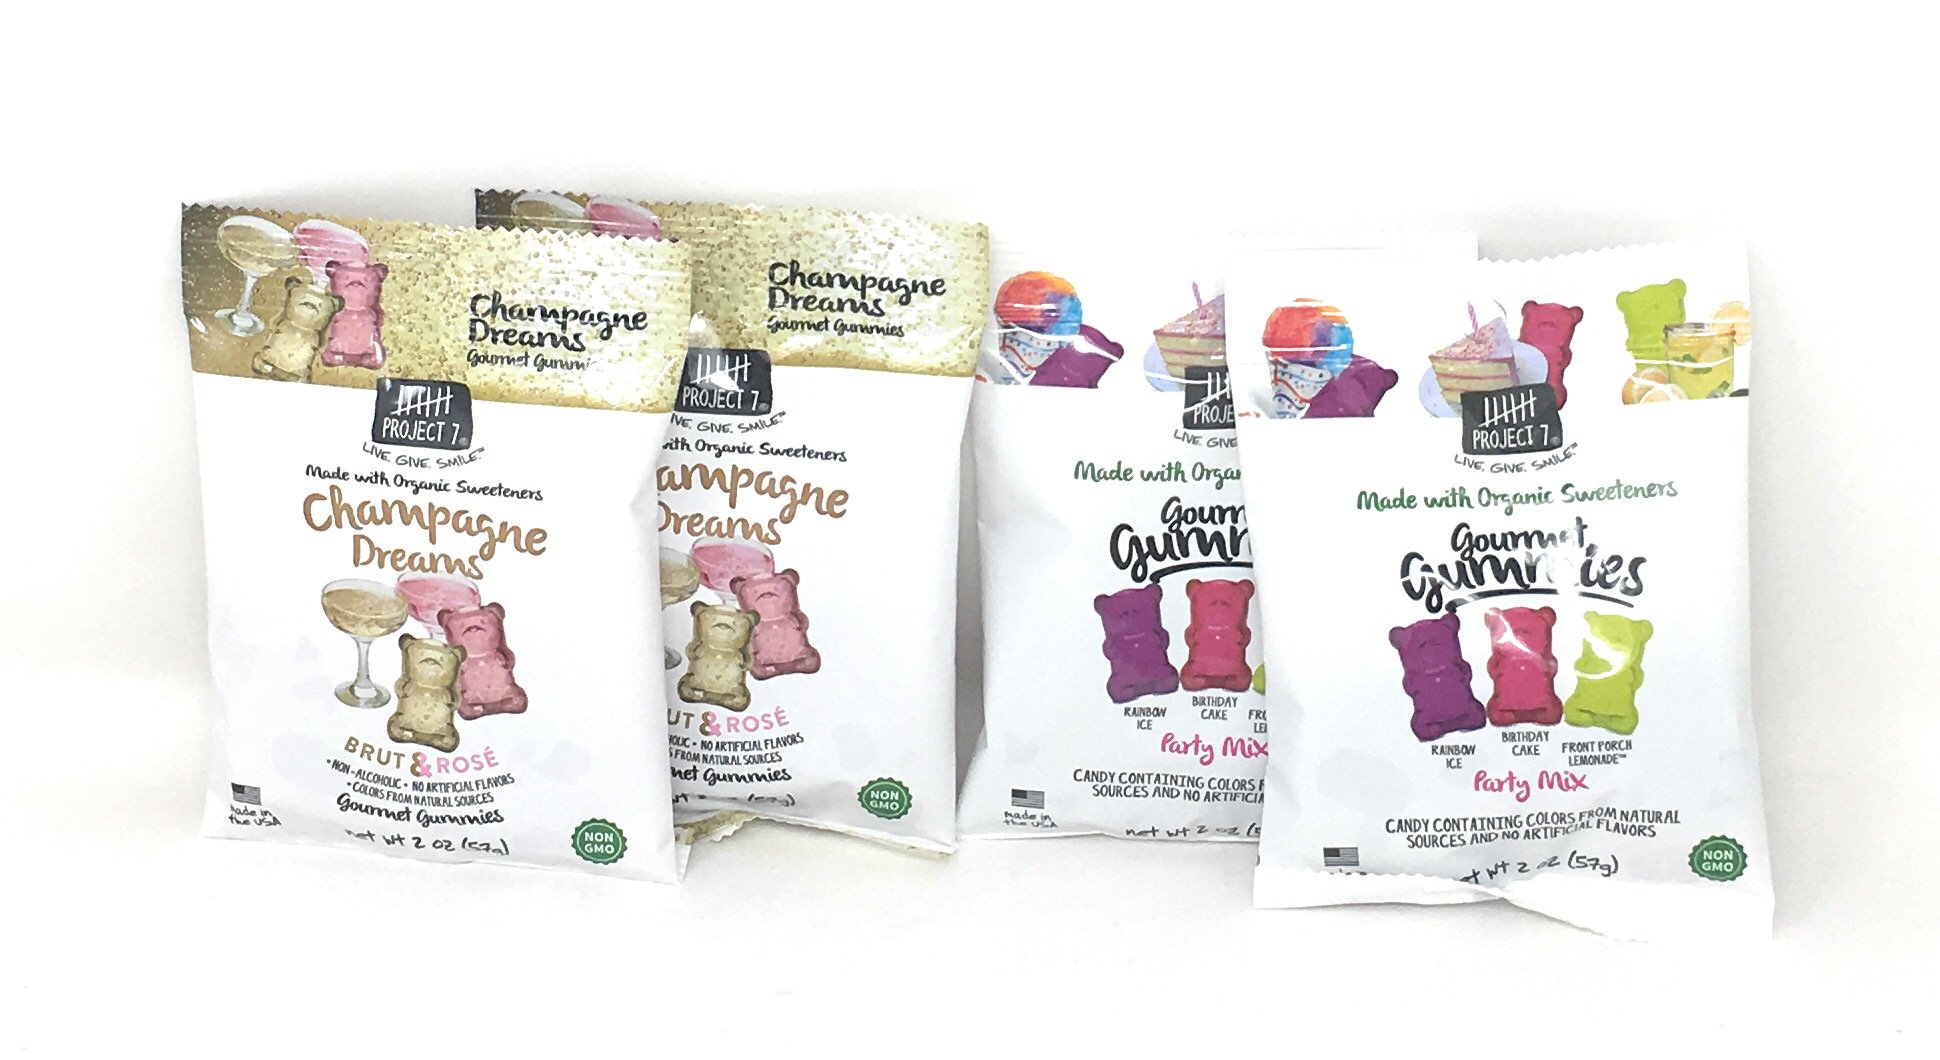 Project 7 Natural Gourmet Gummies Bundle of Four Two Ounce Bags: Two Each of Champagne Dreams and Party Mix (4 Bags)